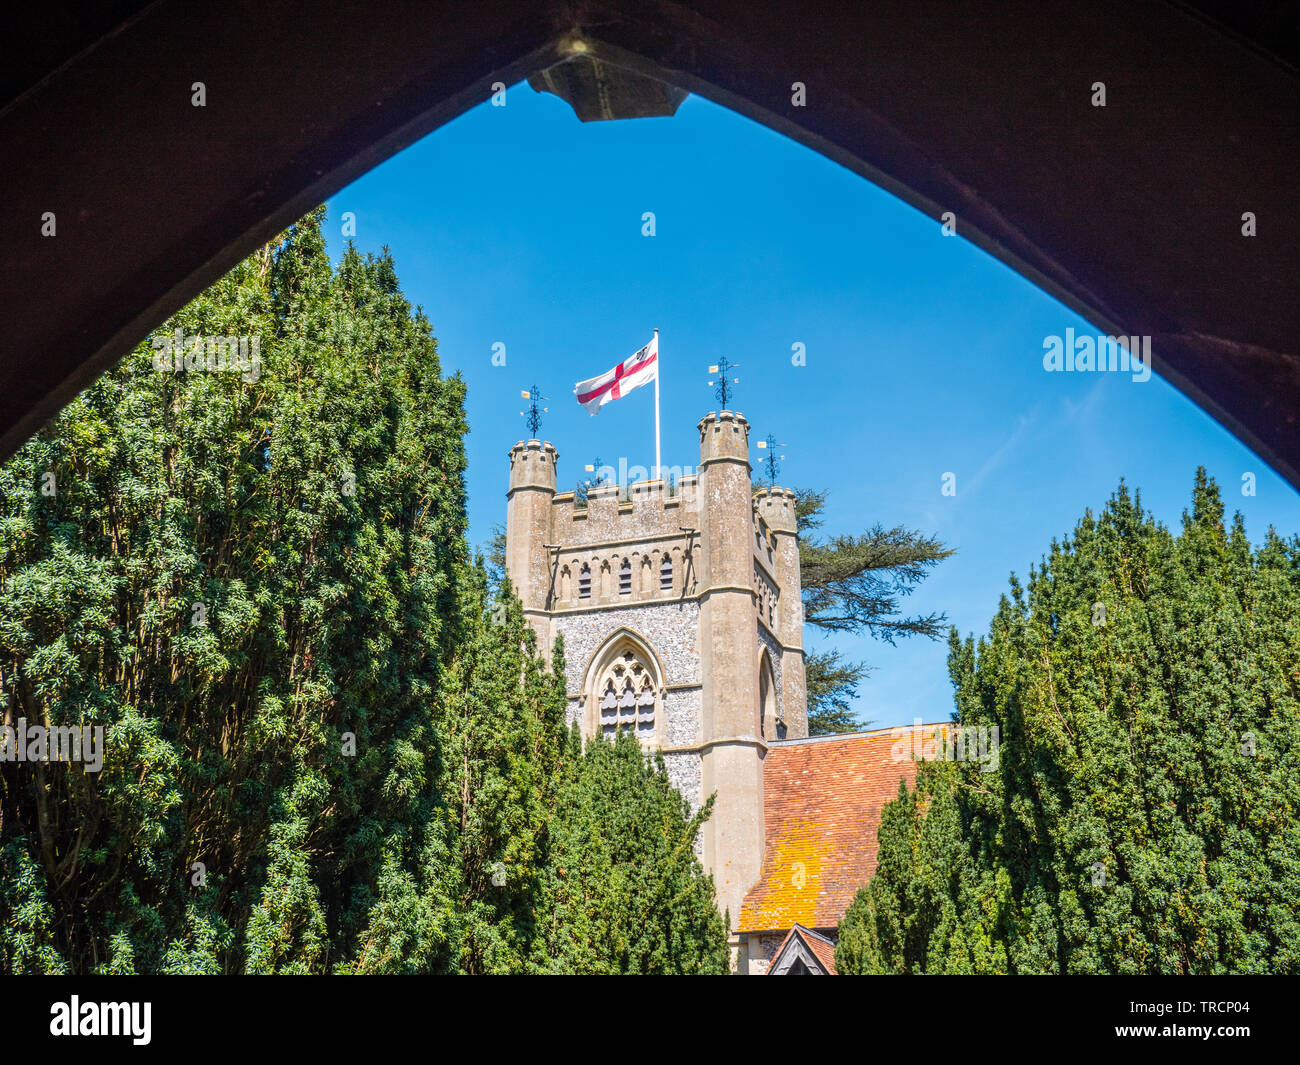 Church Tower, St Mary the Virgin Church Hambleden, used in TV Show Good Omens, Buckinghamshire, England, UK, GB. - Stock Image